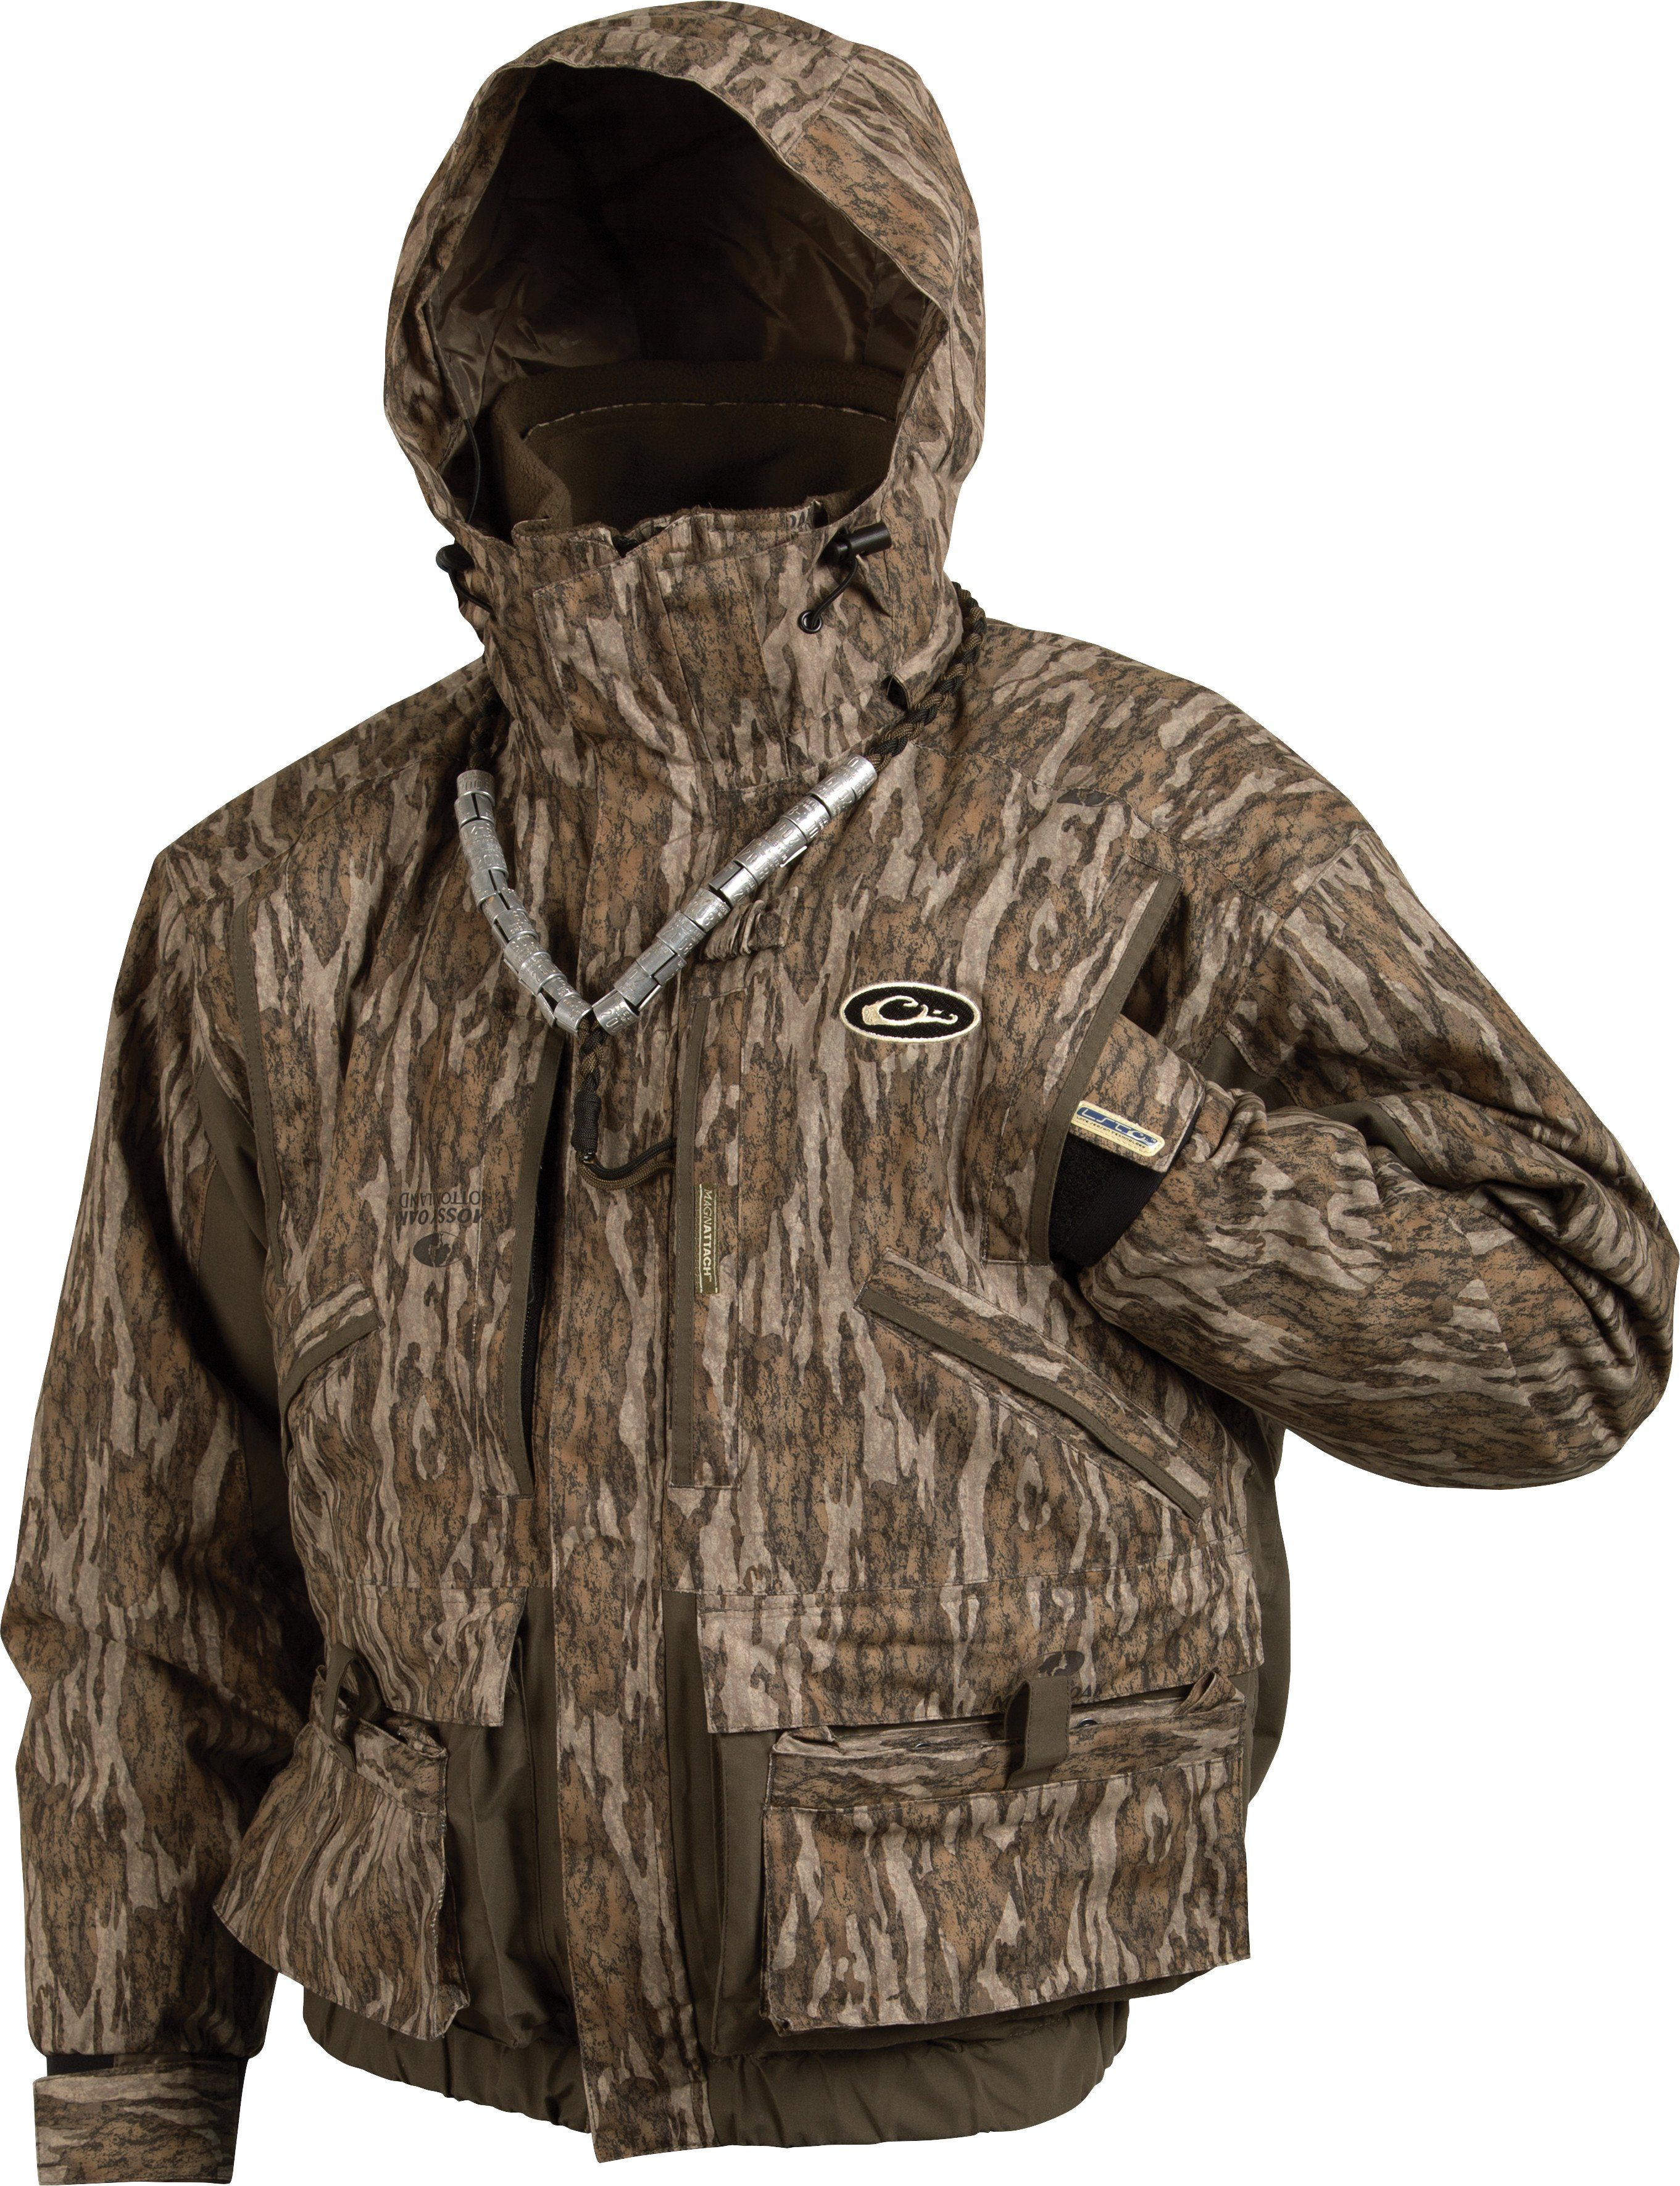 662261cb0c2a LST Insulated Waterfowler s Jacket 2.0